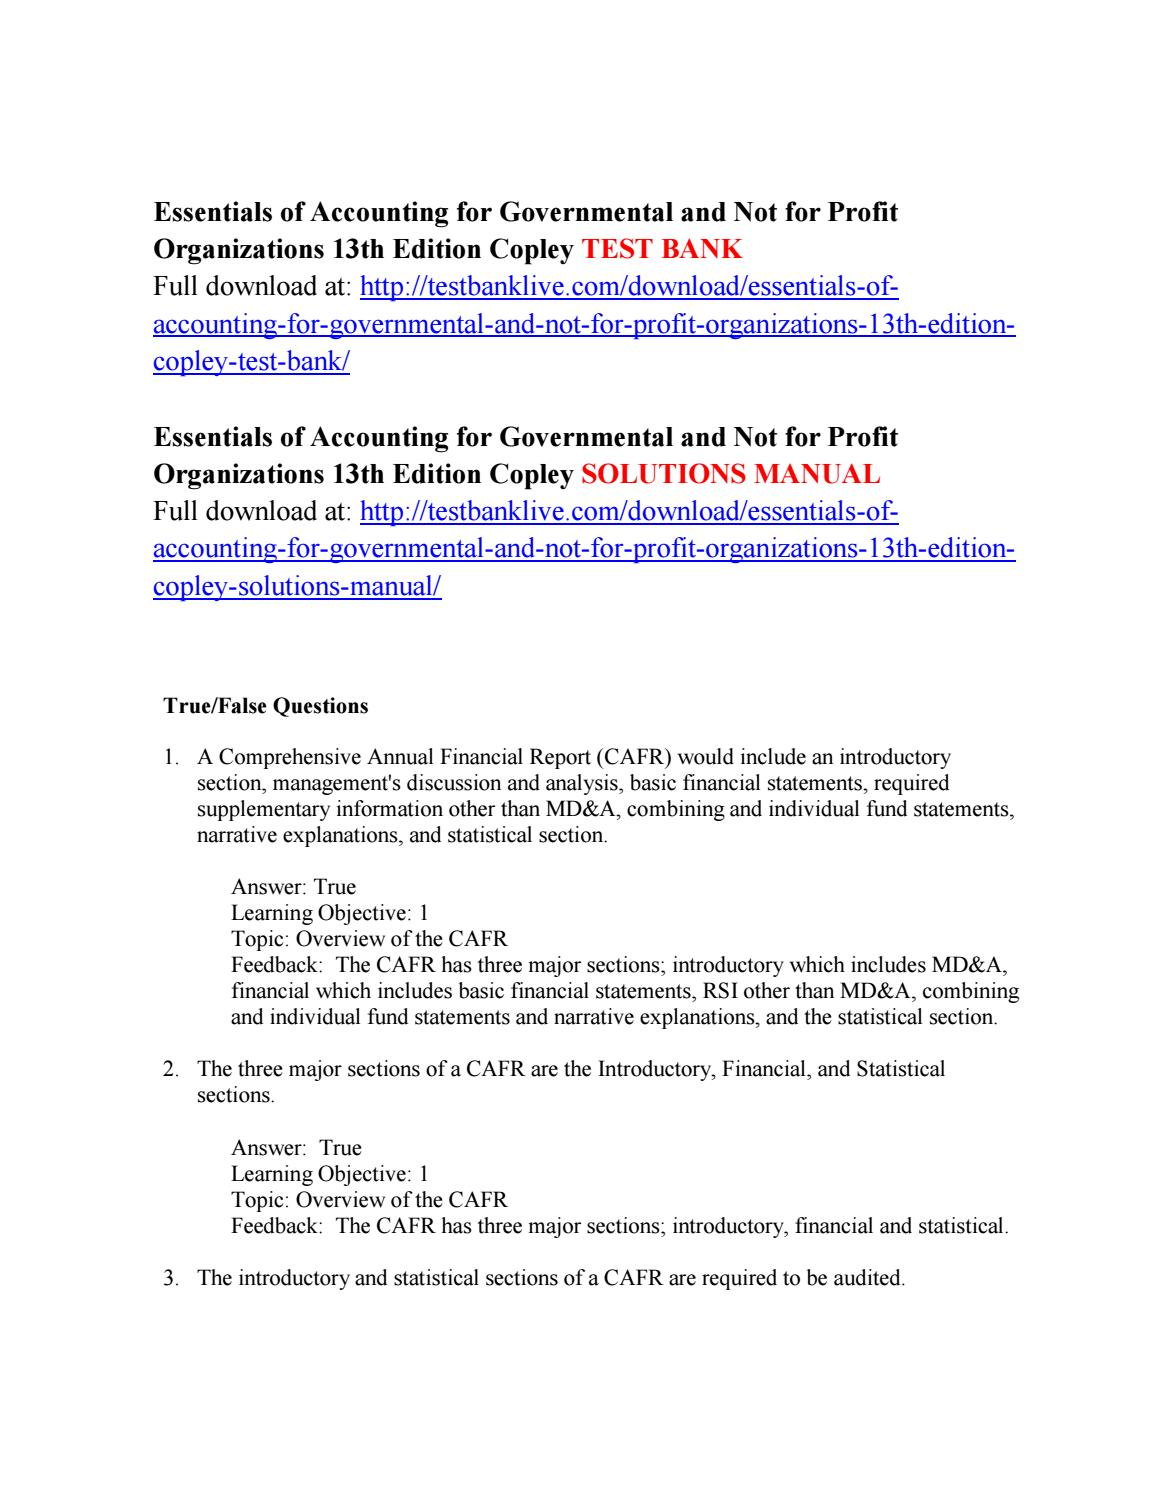 Essentials of accounting for governmental and not for profit organizations 13th  edition copley test by danilysu - issuu